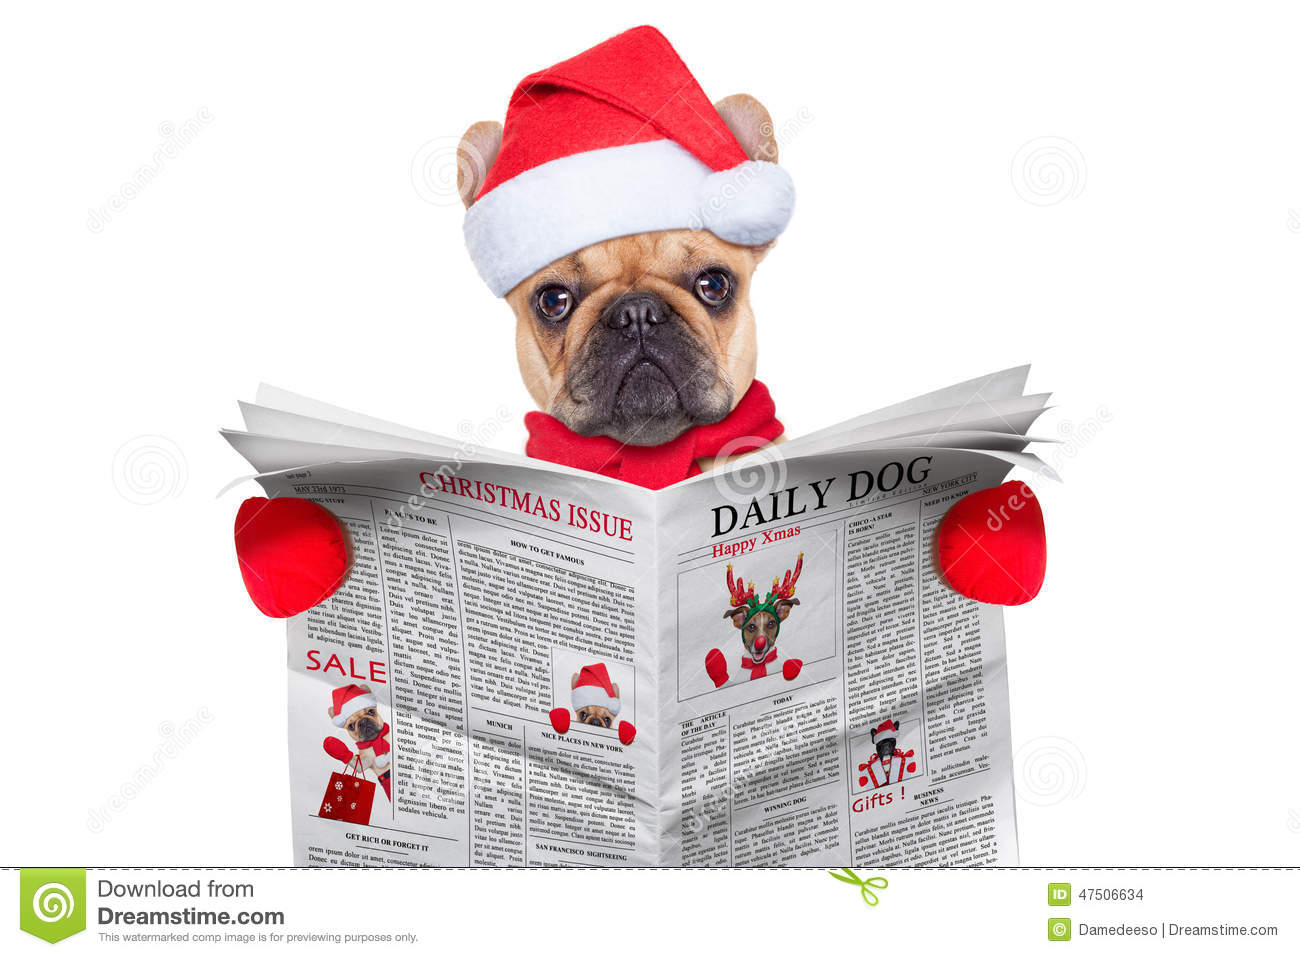 Cute Merry Christmas Wallpaper Dogs Journal De Lecture De Chien Photo Stock Image 47506634